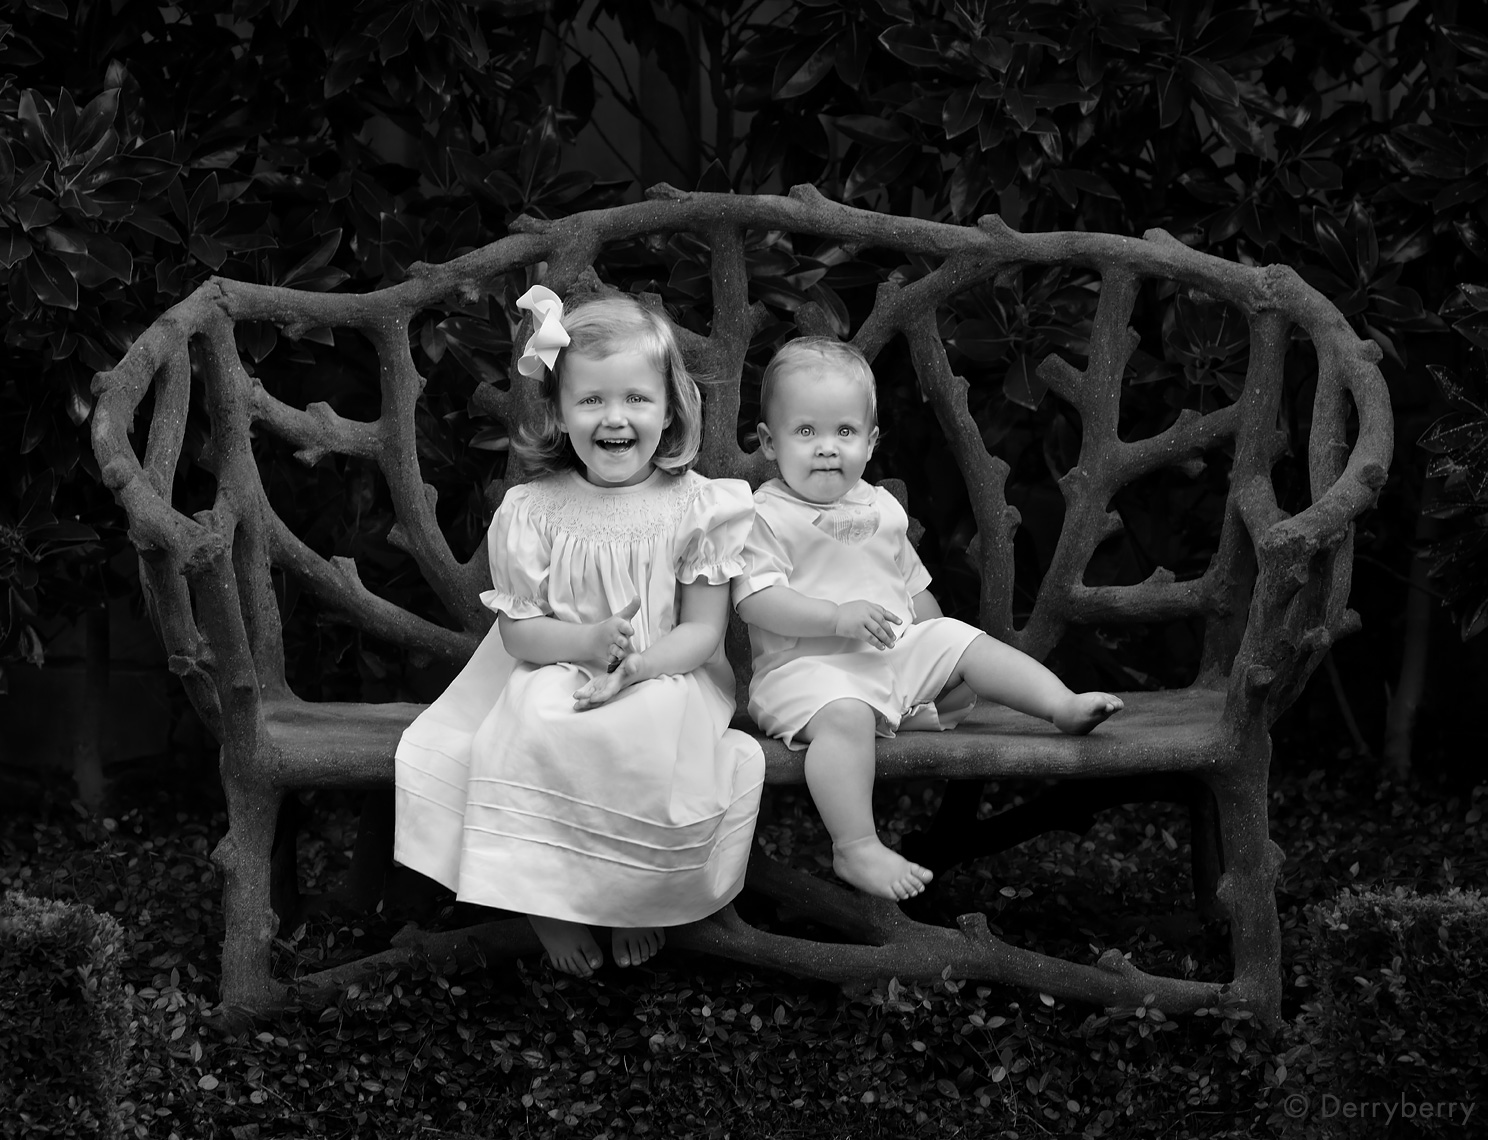 Black and white portrait of a young brother and sister sitting on a faux bois bench on location in a garden